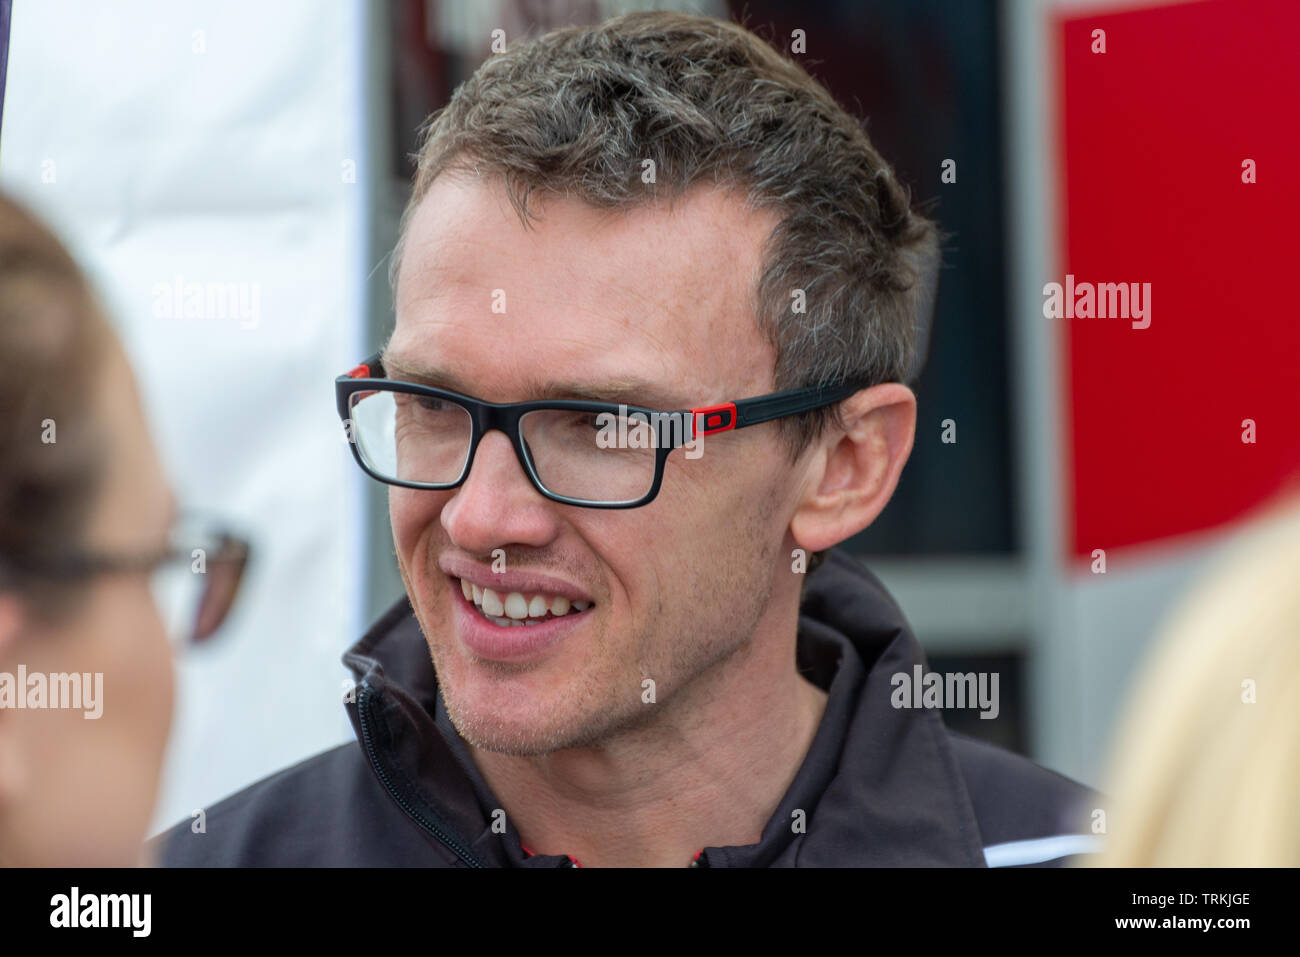 Matt Simpson BTCC Racing Driver at Thruxton During the Kwikfit British Touring Car Championship Weekend of May 18th and 19th 2019 - Stock Image